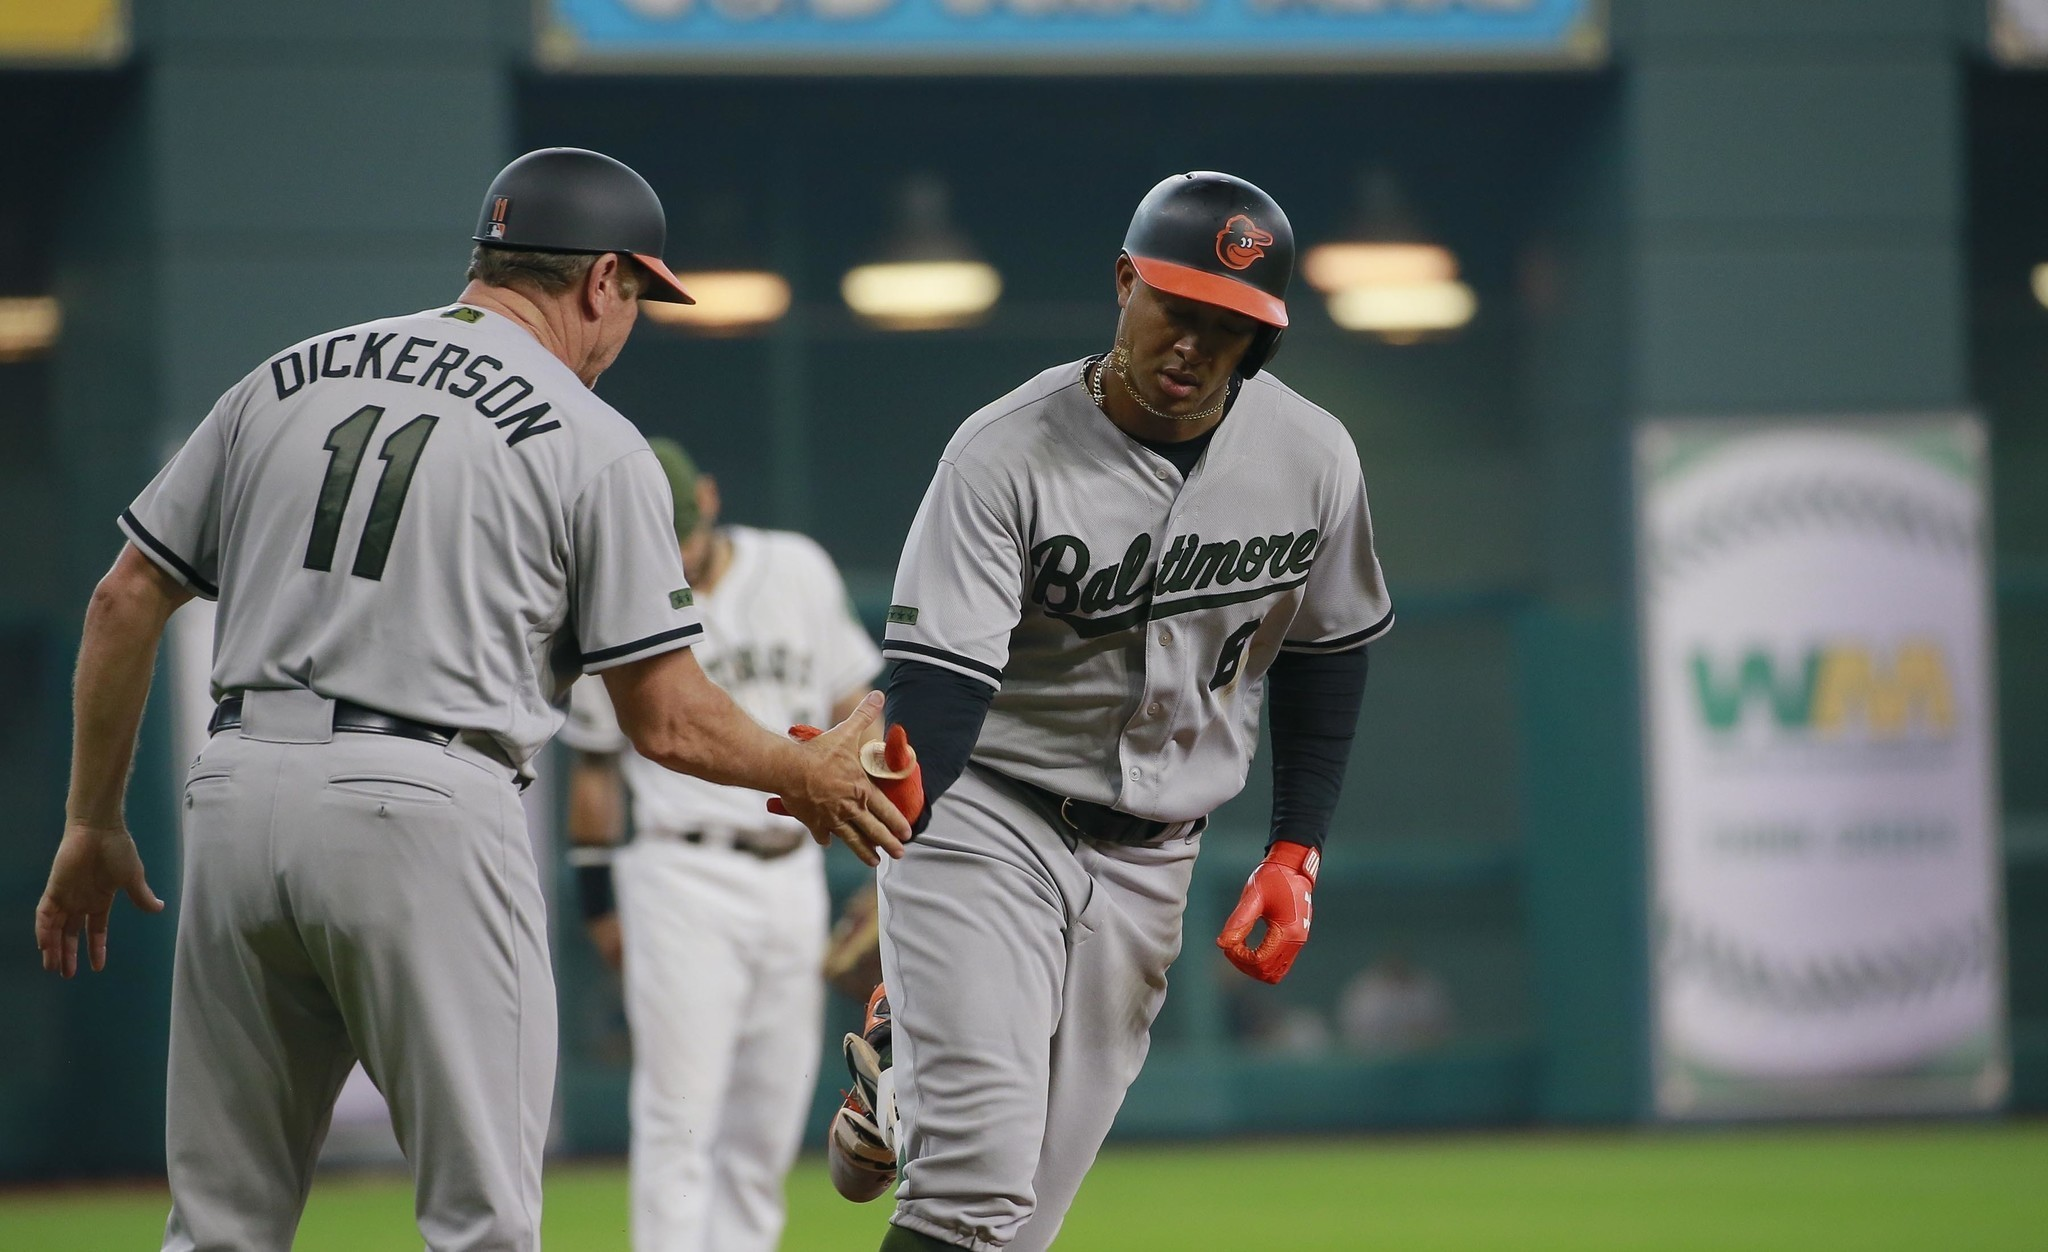 Bal-orioles-on-deck-what-to-watch-monday-vs-yankees-plus-series-matchups-20170529